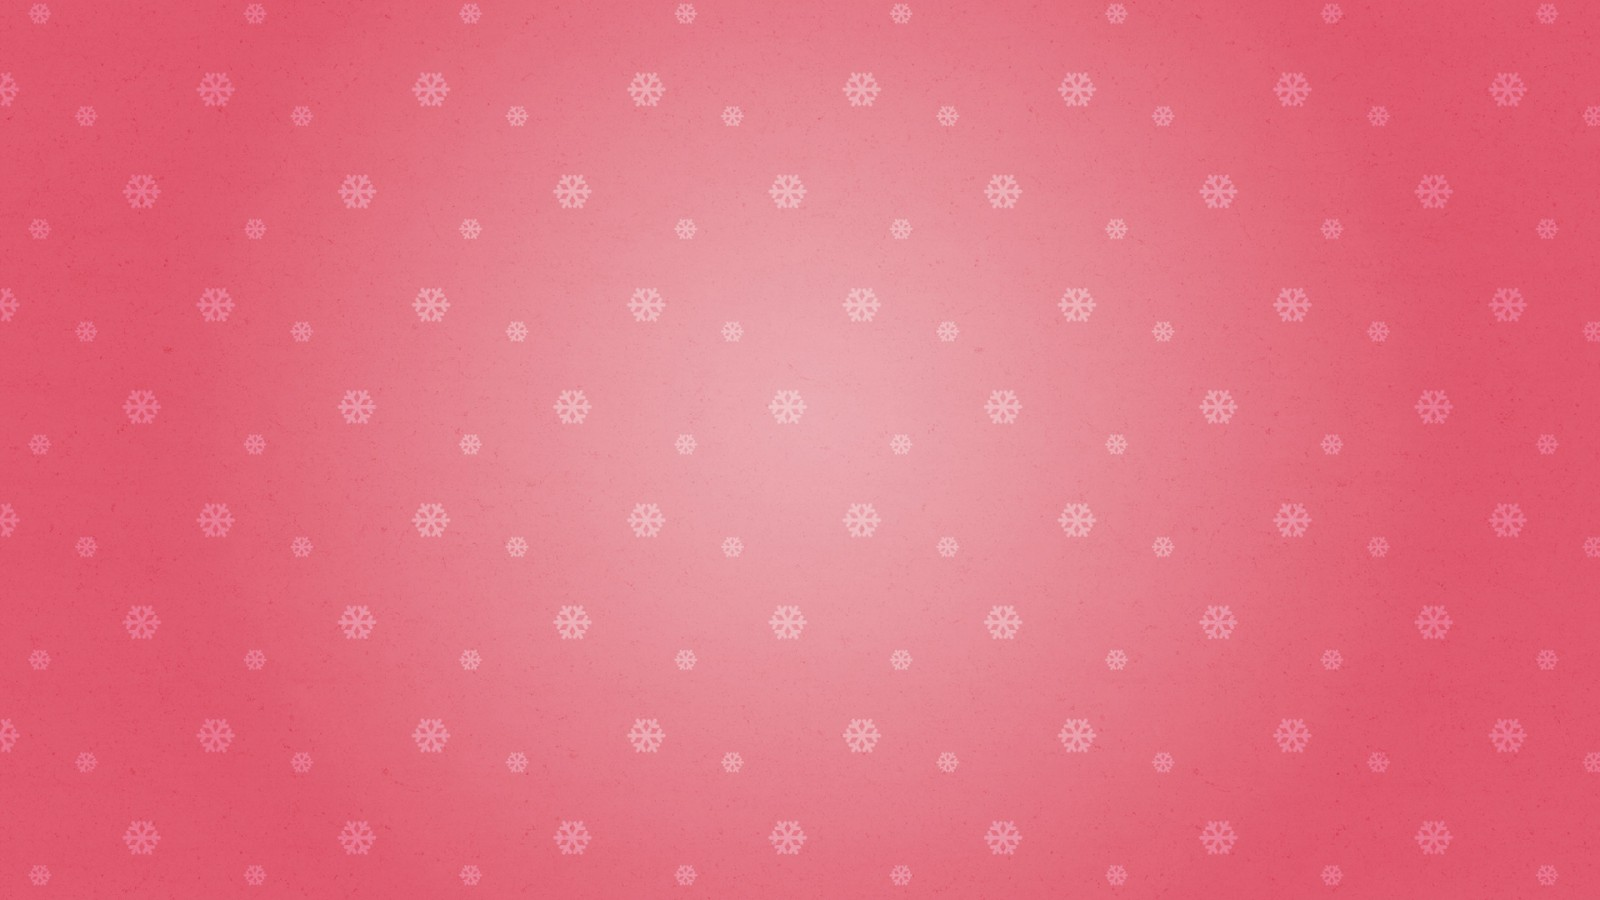 Red Snowflakes Pattern